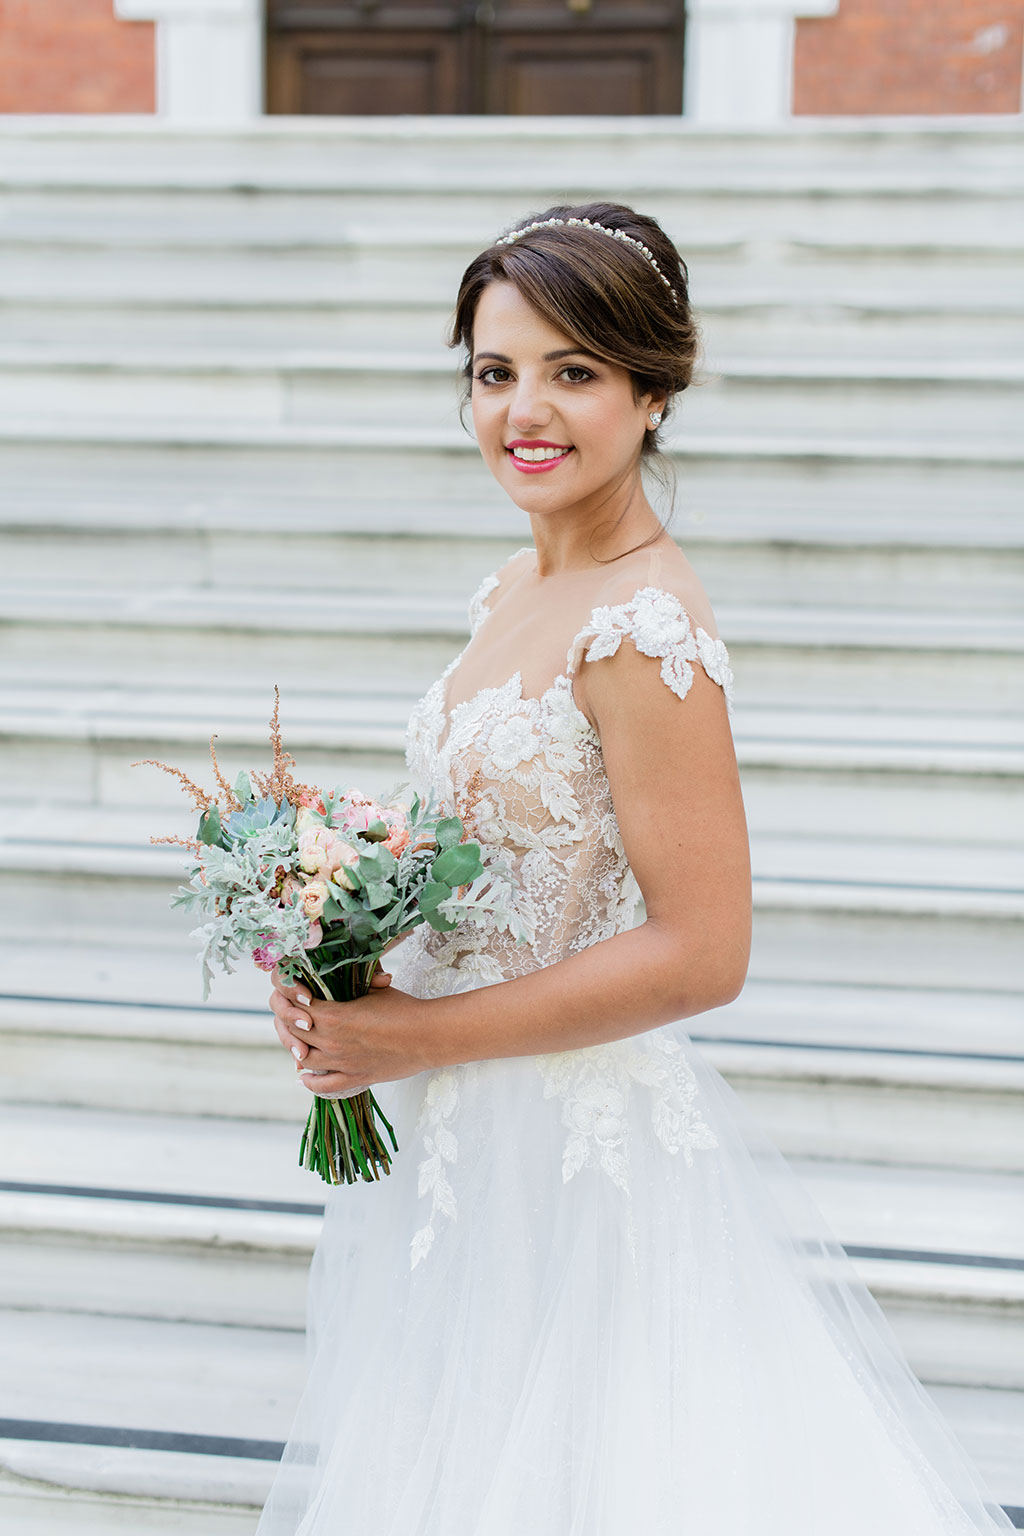 a happy bride with her wedding flowers